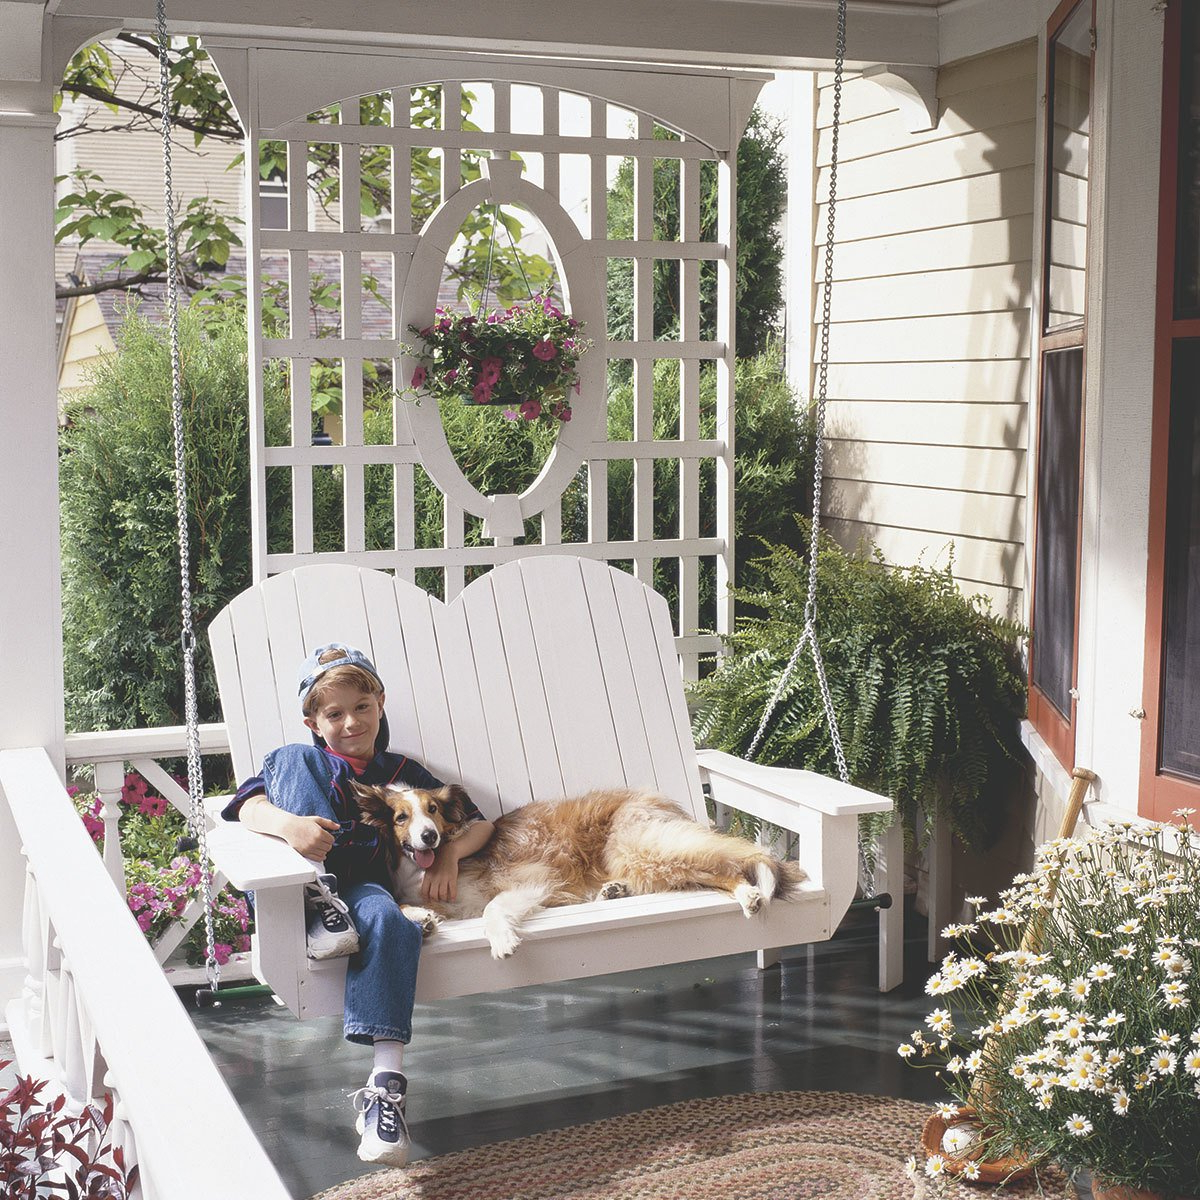 10 Pretty Porch Swings – The Family Handyman For Most Up To Date Porch Swings (Gallery 20 of 26)